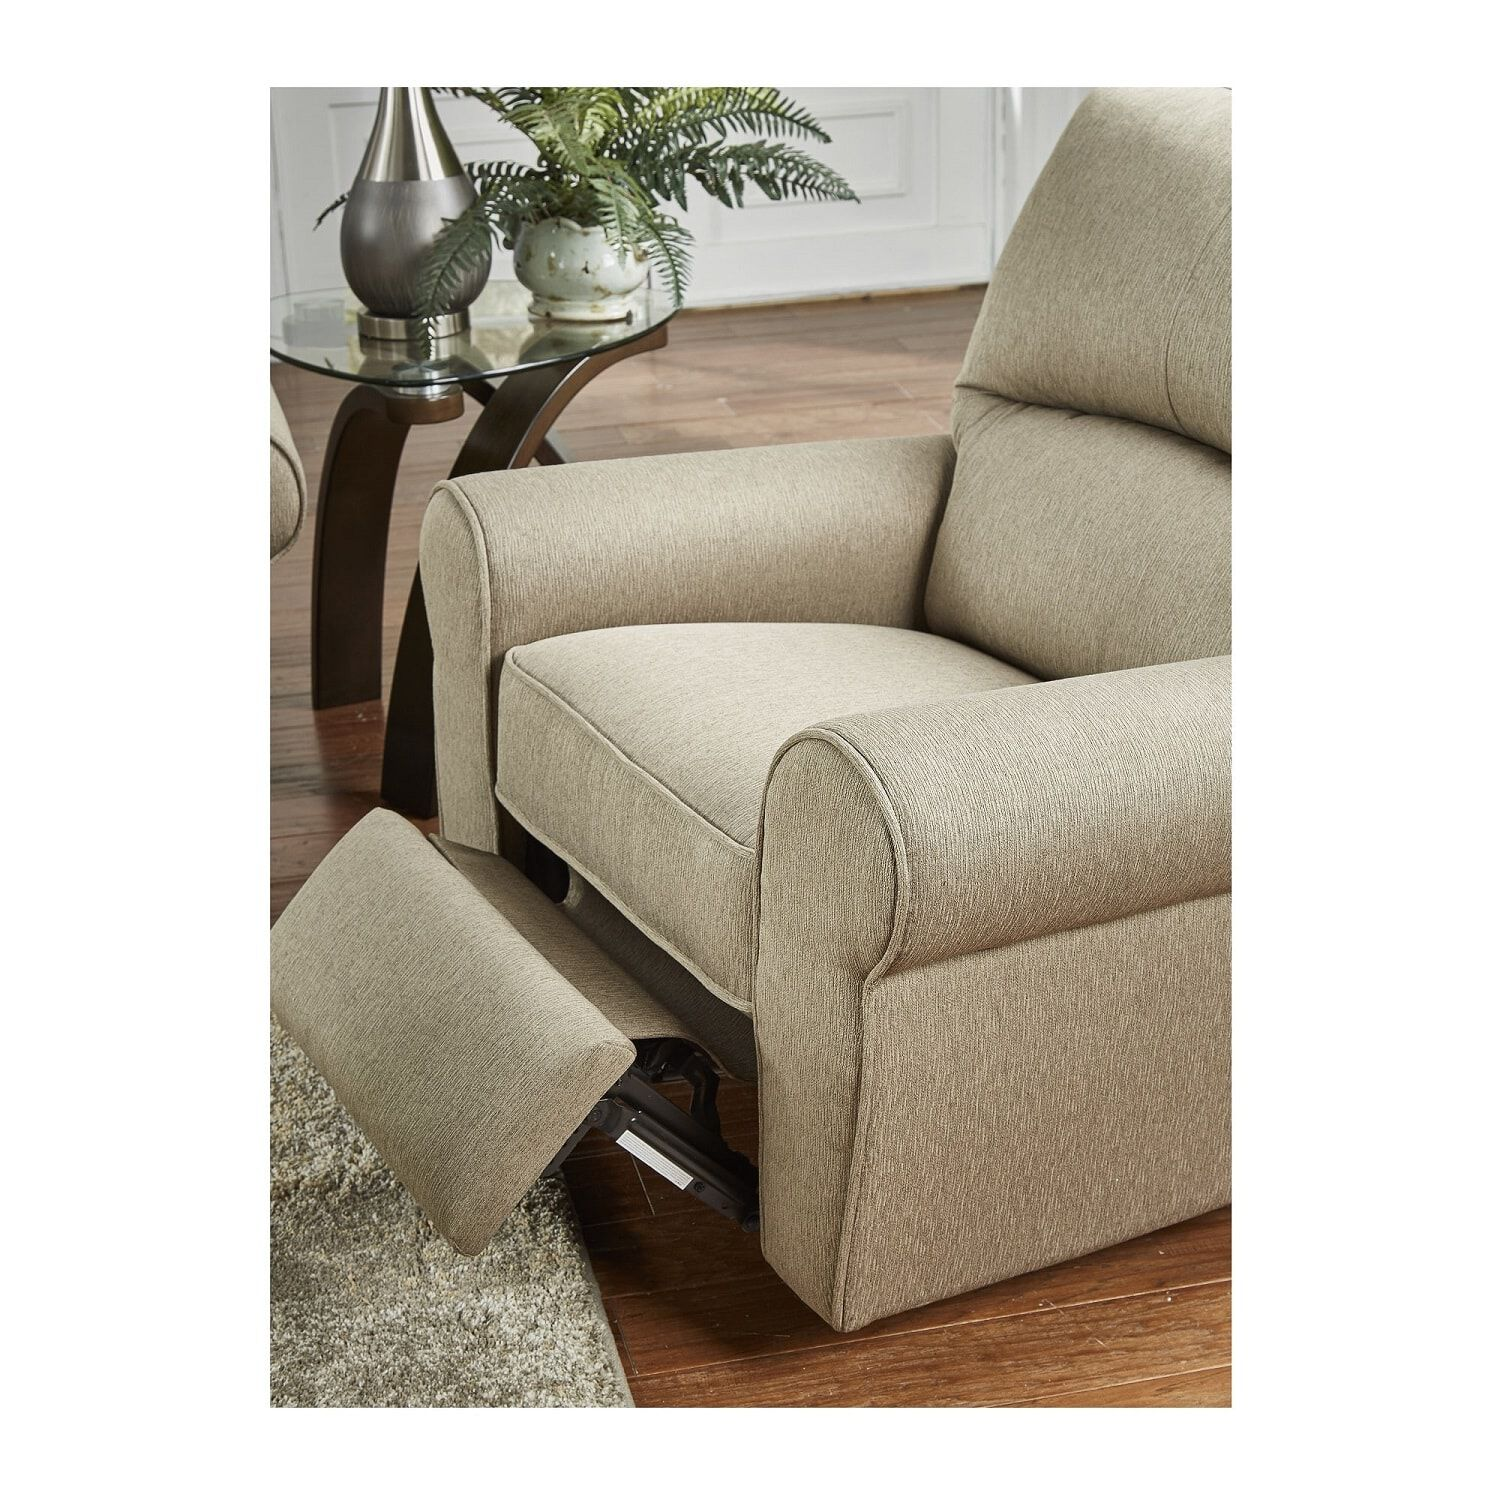 Promo Chaise Gamer 2 Piece Hayden Chaise Sofa And Recliner Living Room Collection